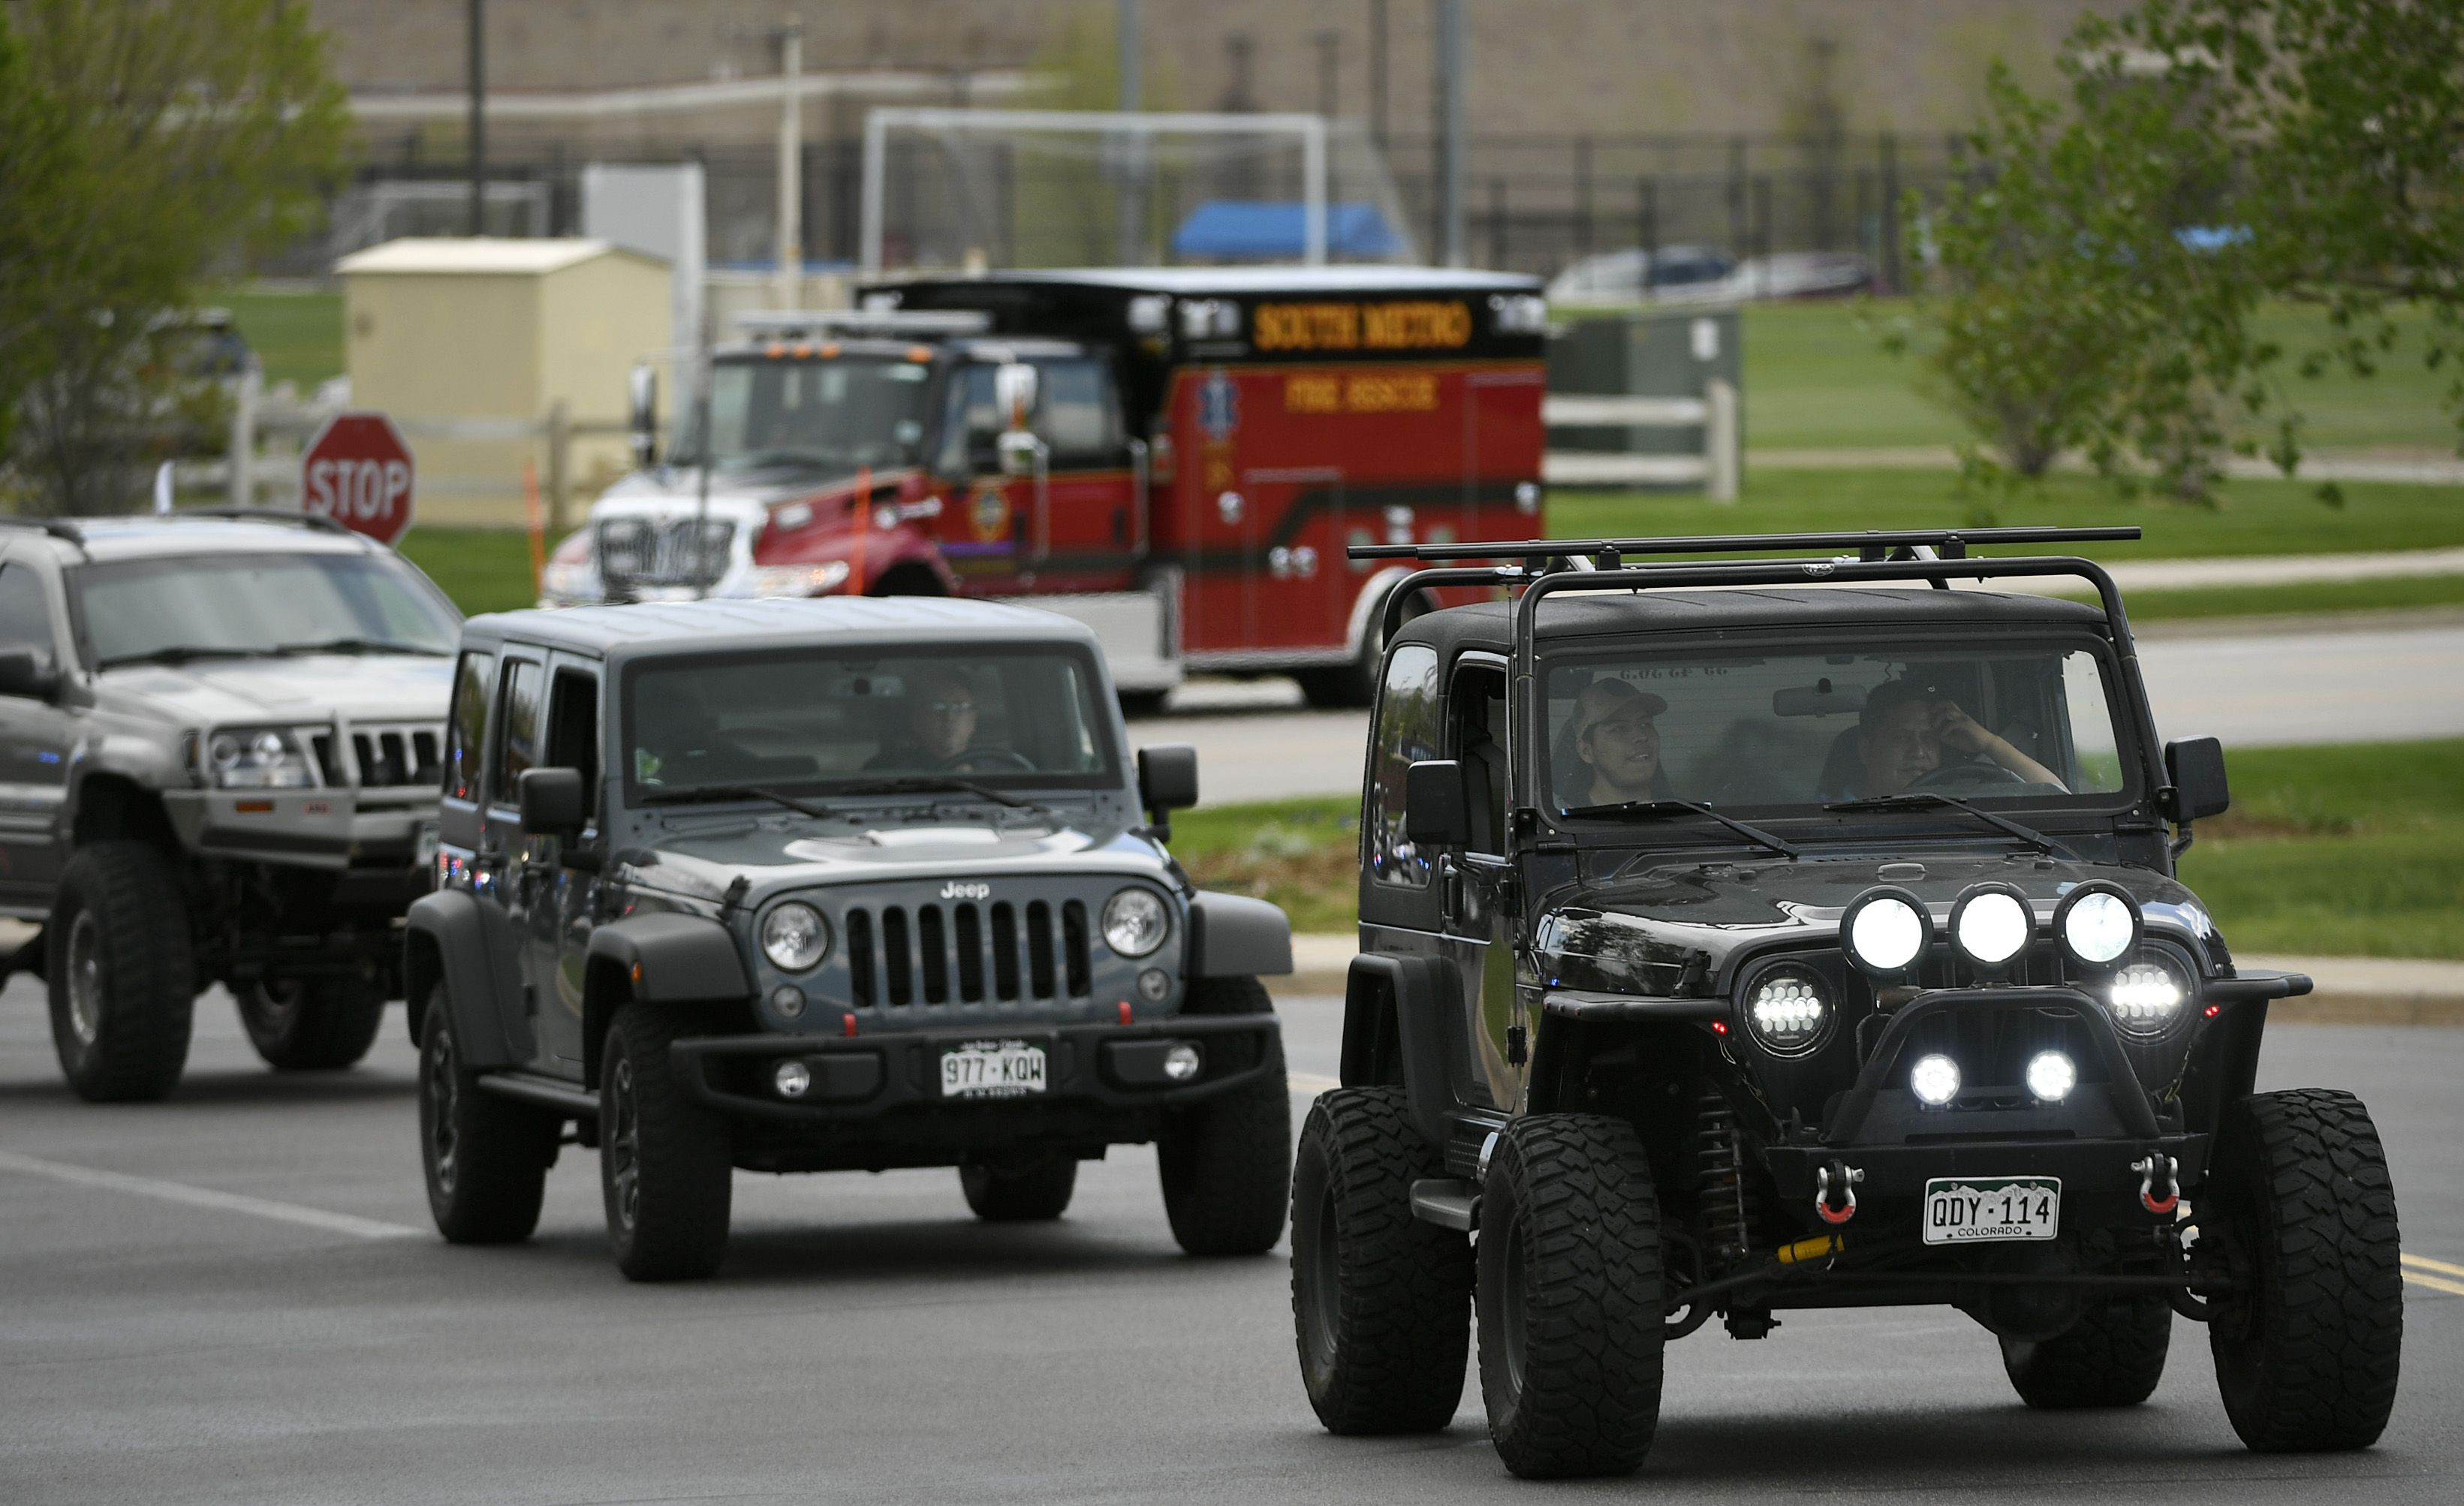 Hundreds of Jeeps Pay Tribute to 18-Year-Old Jeep Owner Killed Thwarting School Shooting